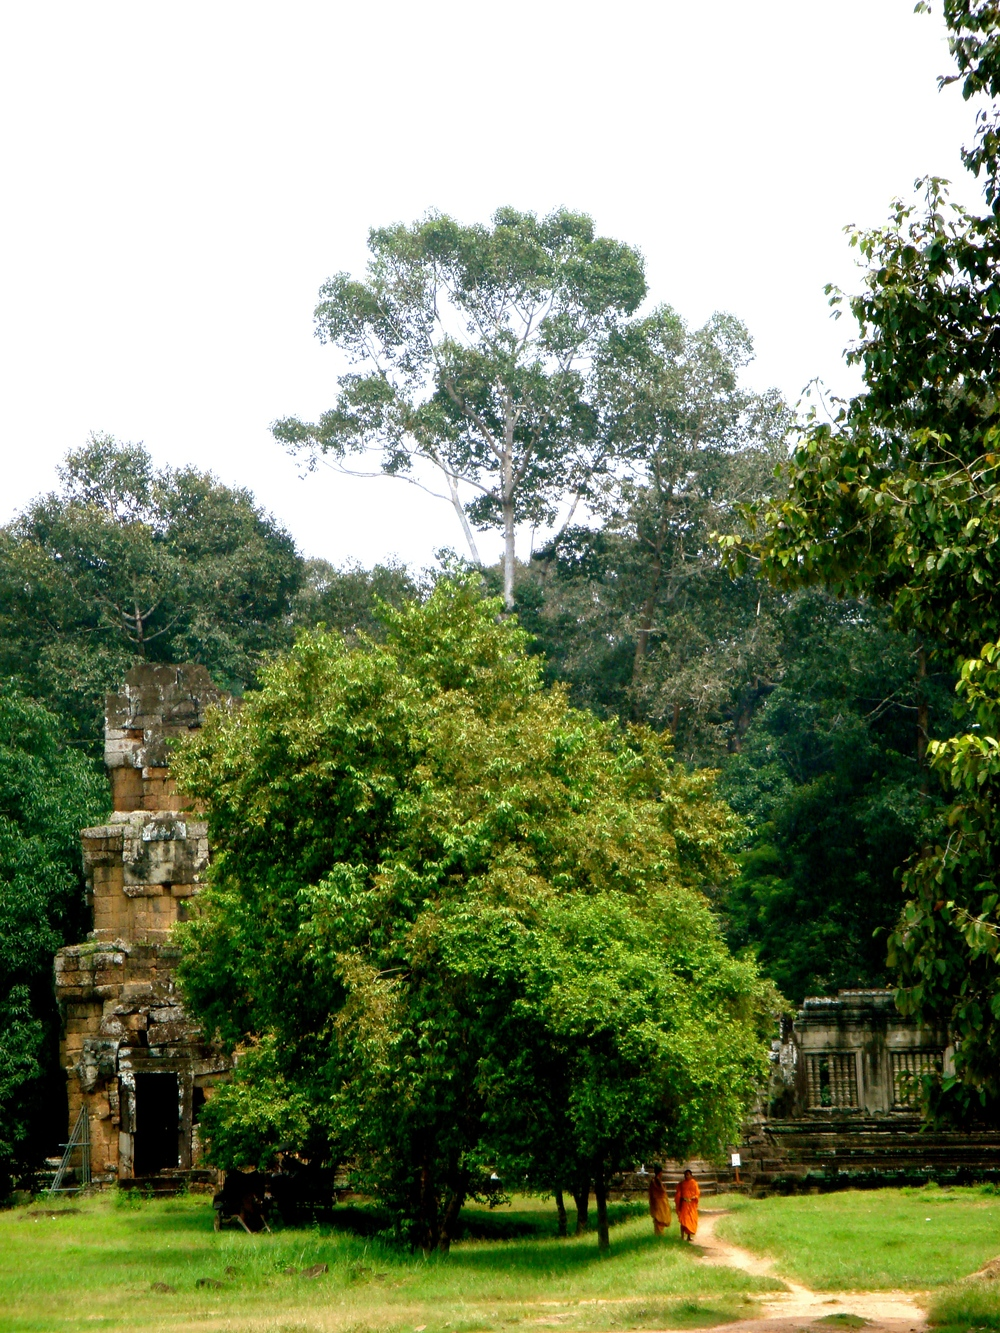 Monks seeking shade at the Angkor complex in Cambodia